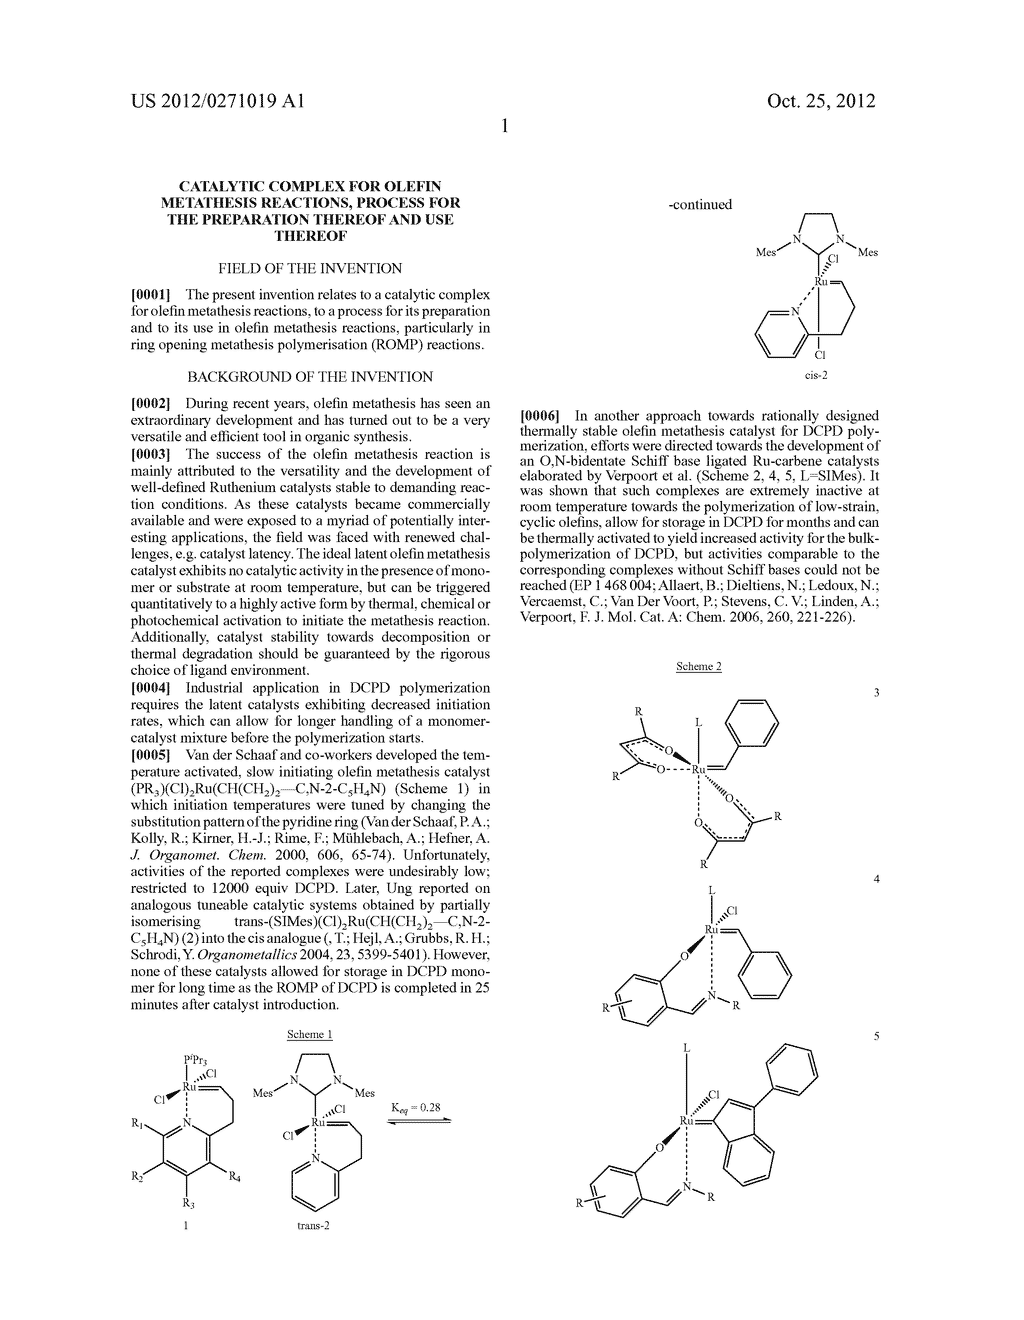 CATALYTIC COMPLEX FOR OLEFIN METATHESIS REACTIONS, PROCESS FOR THE     PREPARATION THEREOF AND USE THEREOF - diagram, schematic, and image 02